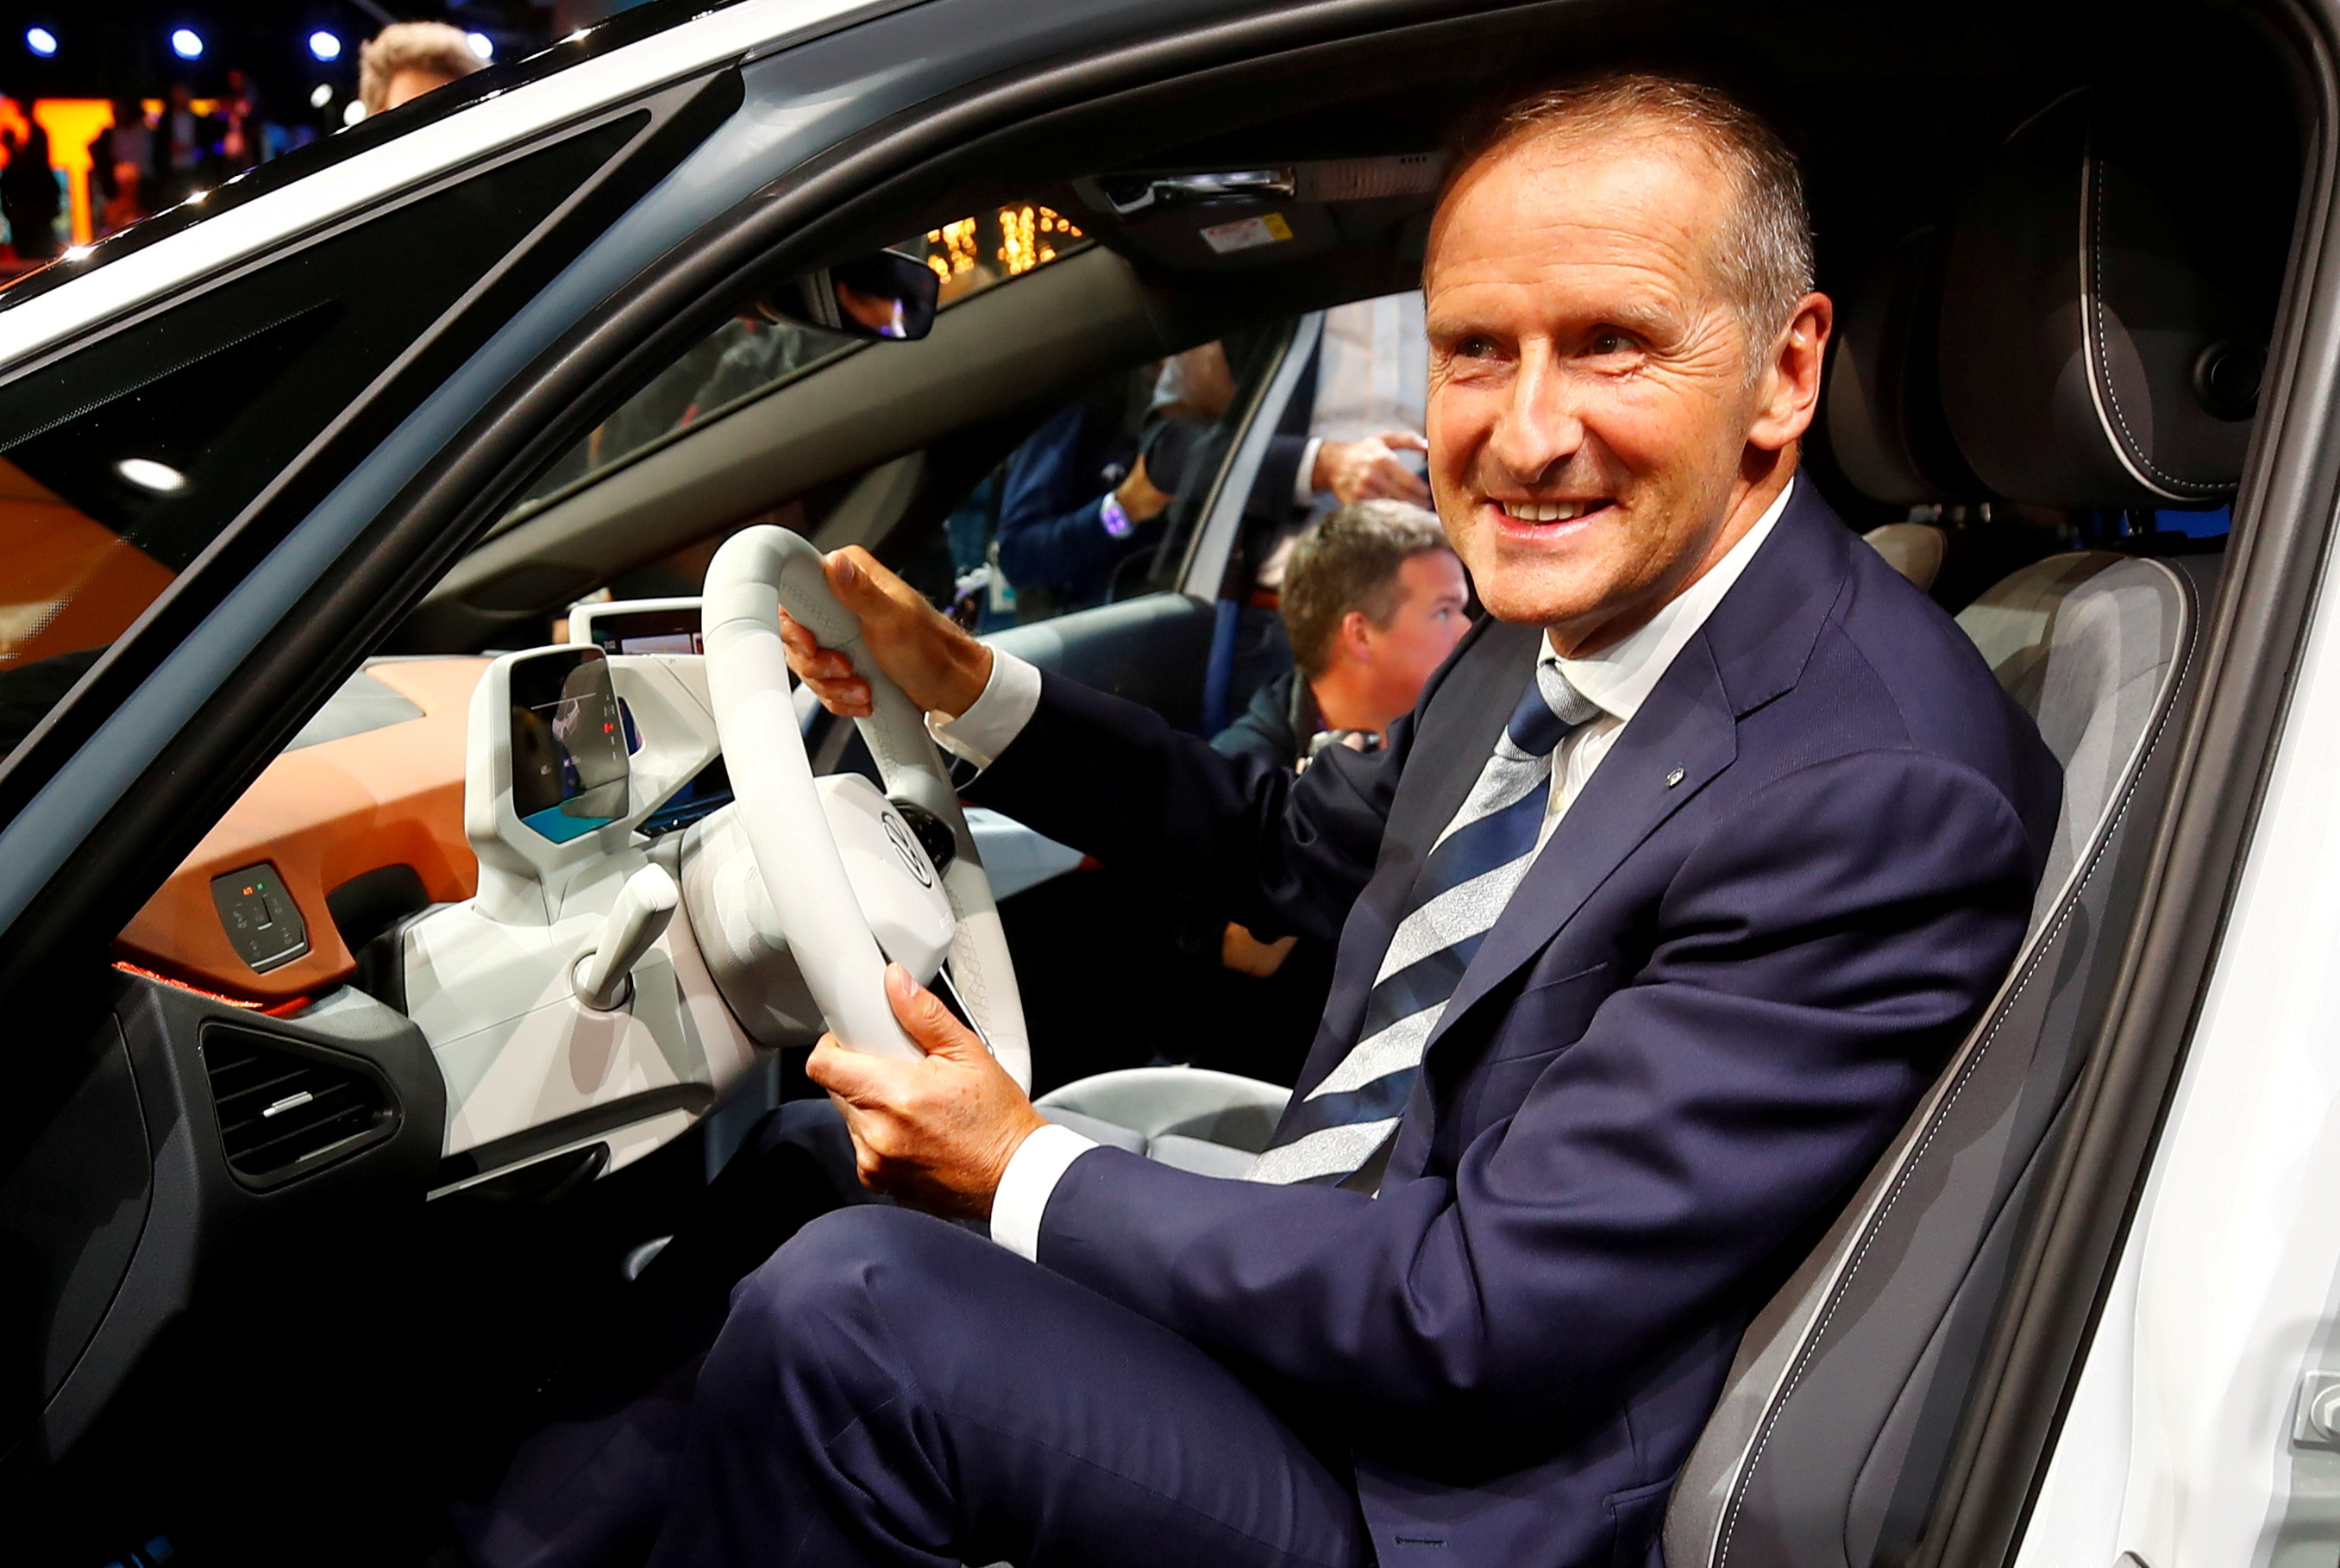 Herbert Diess, CEO of German carmaker Volkswagen AG, poses in an ID.3 pre-production prototype during the presentation of Volkswagen's new electric car on the eve of the International Frankfurt Motor Show IAA in Frankfurt, Germany September 9, 2019. REUTERS/Wolfgang Rattay/File Photo